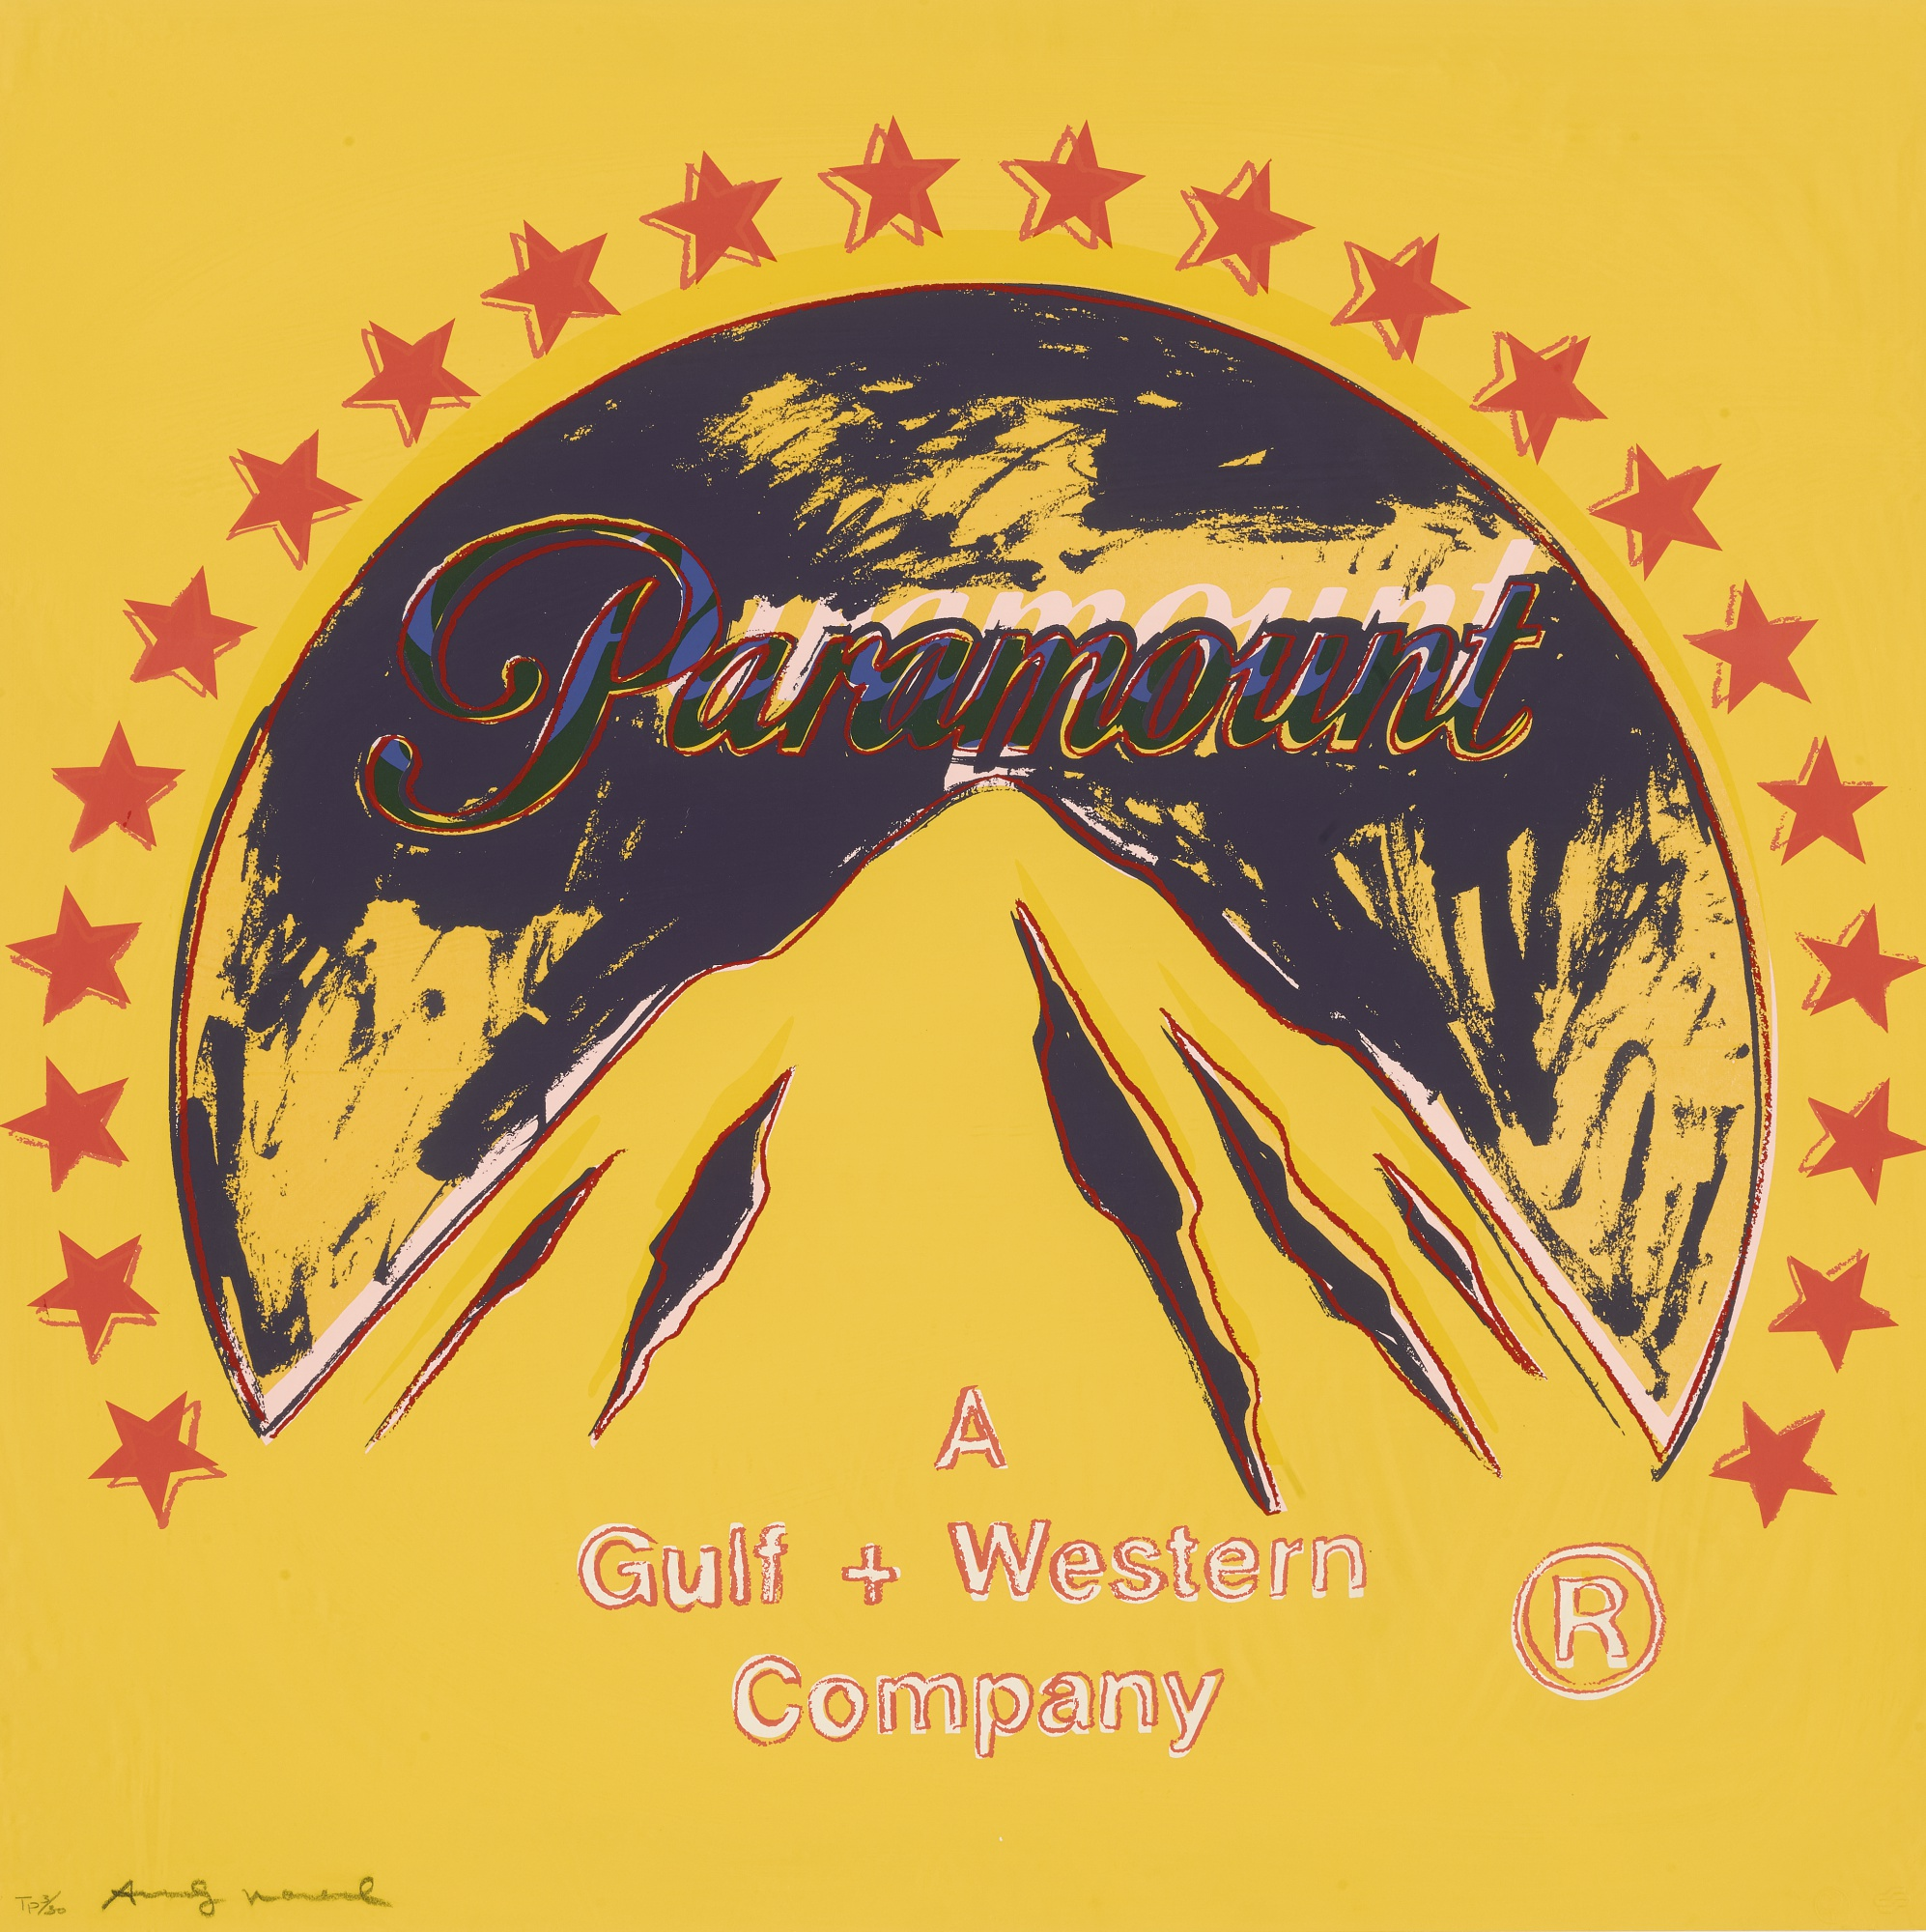 Andy Warhol Paramount TP (Unique Trial Proof), from the Ads Series, 1985